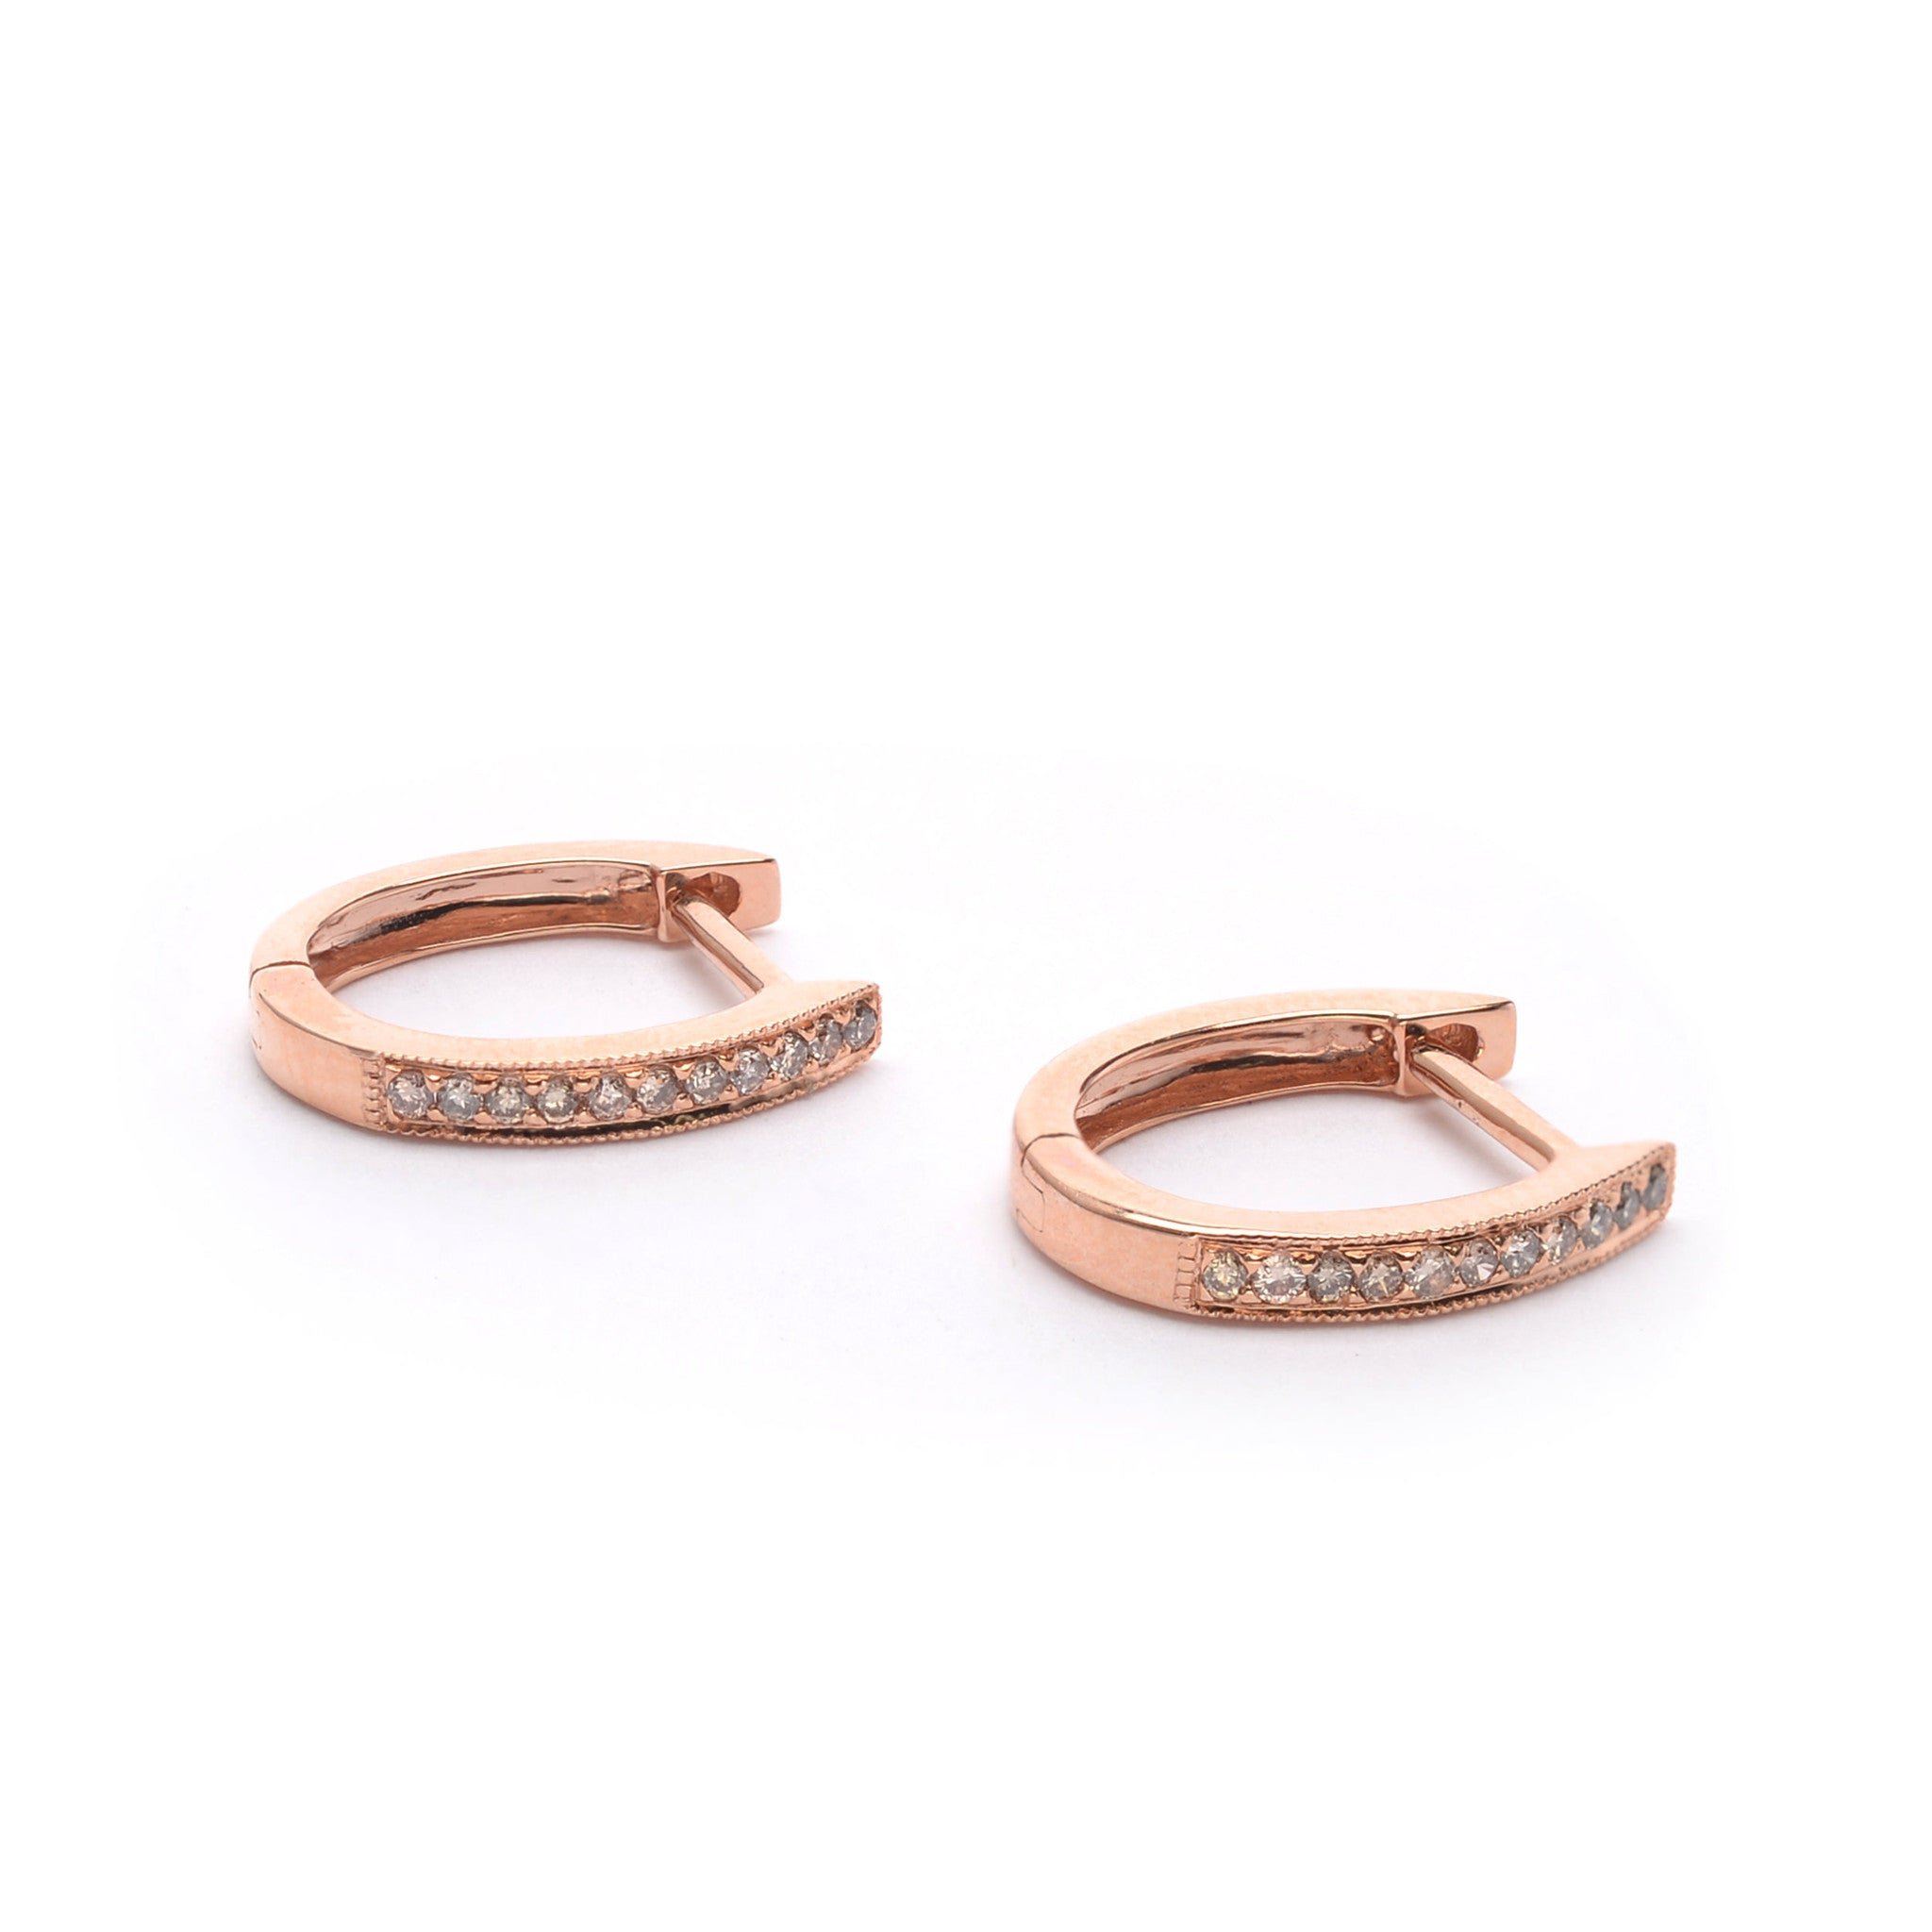 18kt Gold hoop earrings with Champagne Diamonds